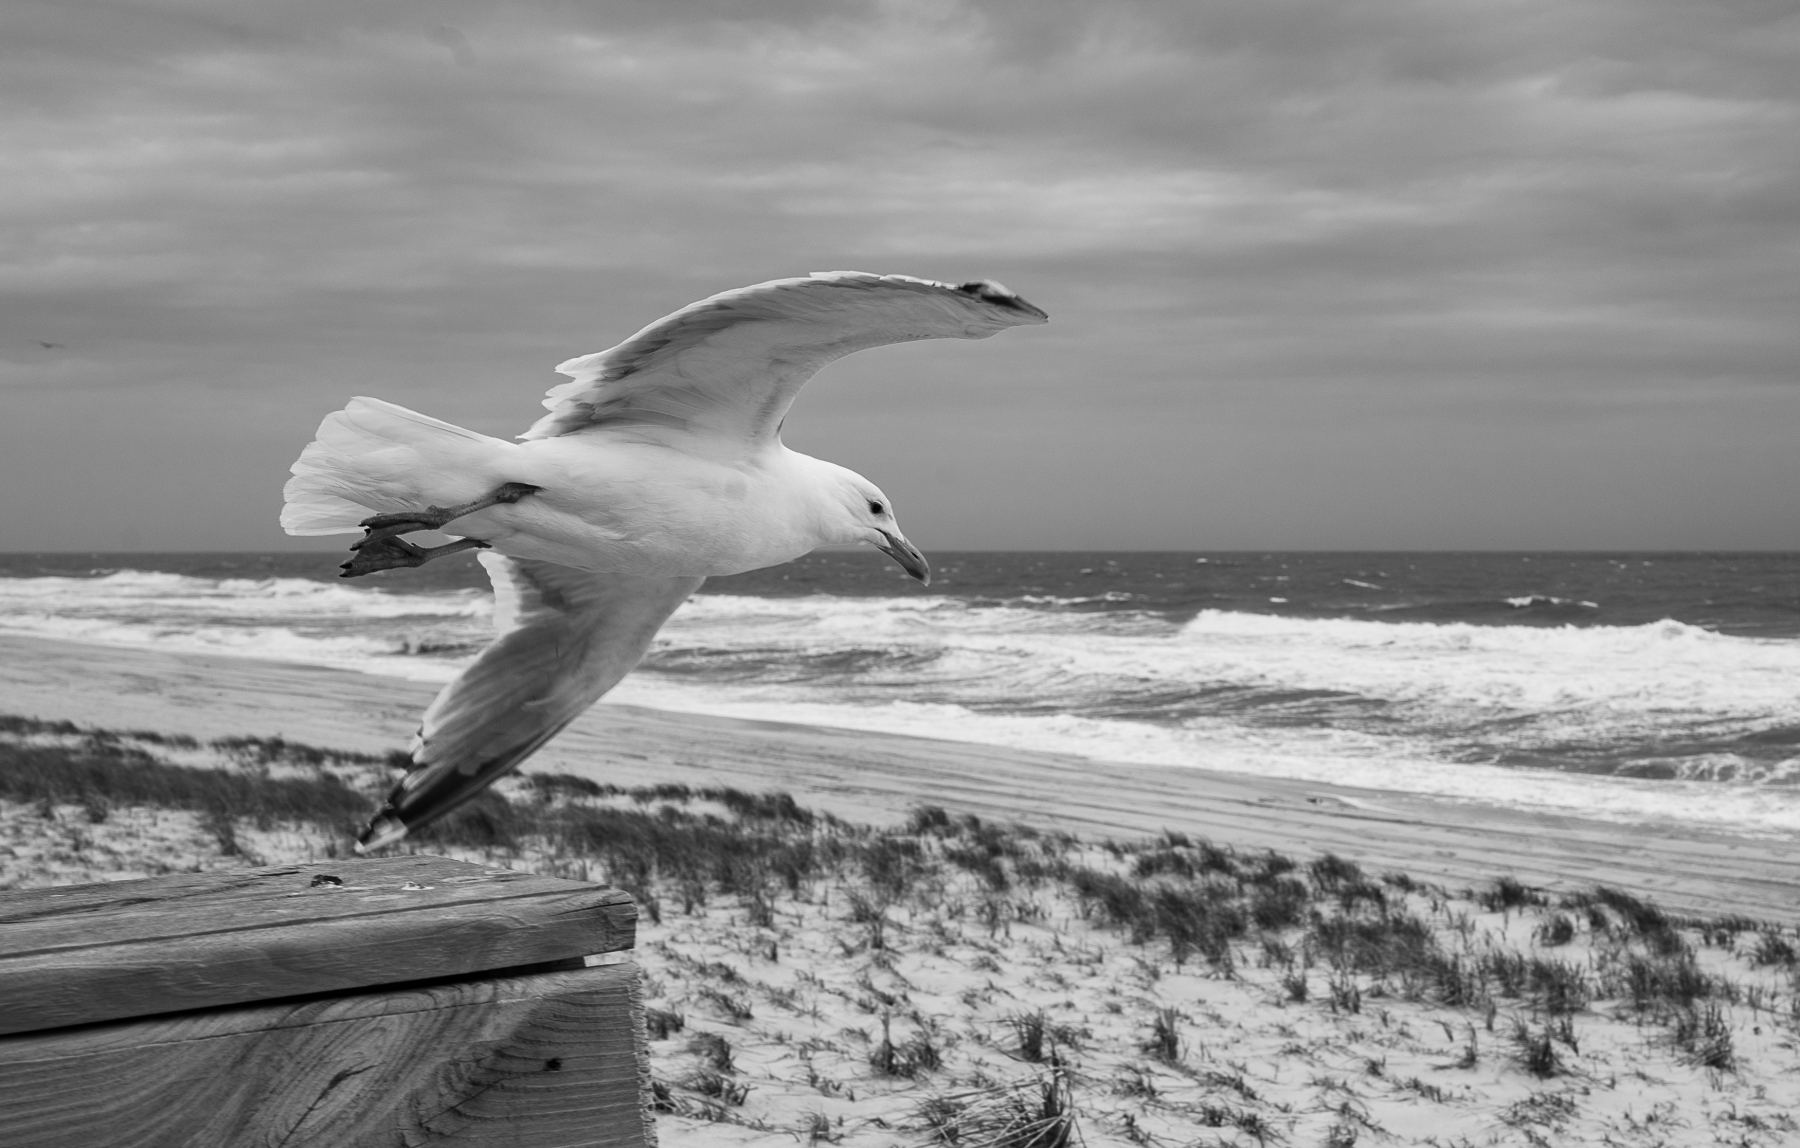 seagull-on-windy-day-5585